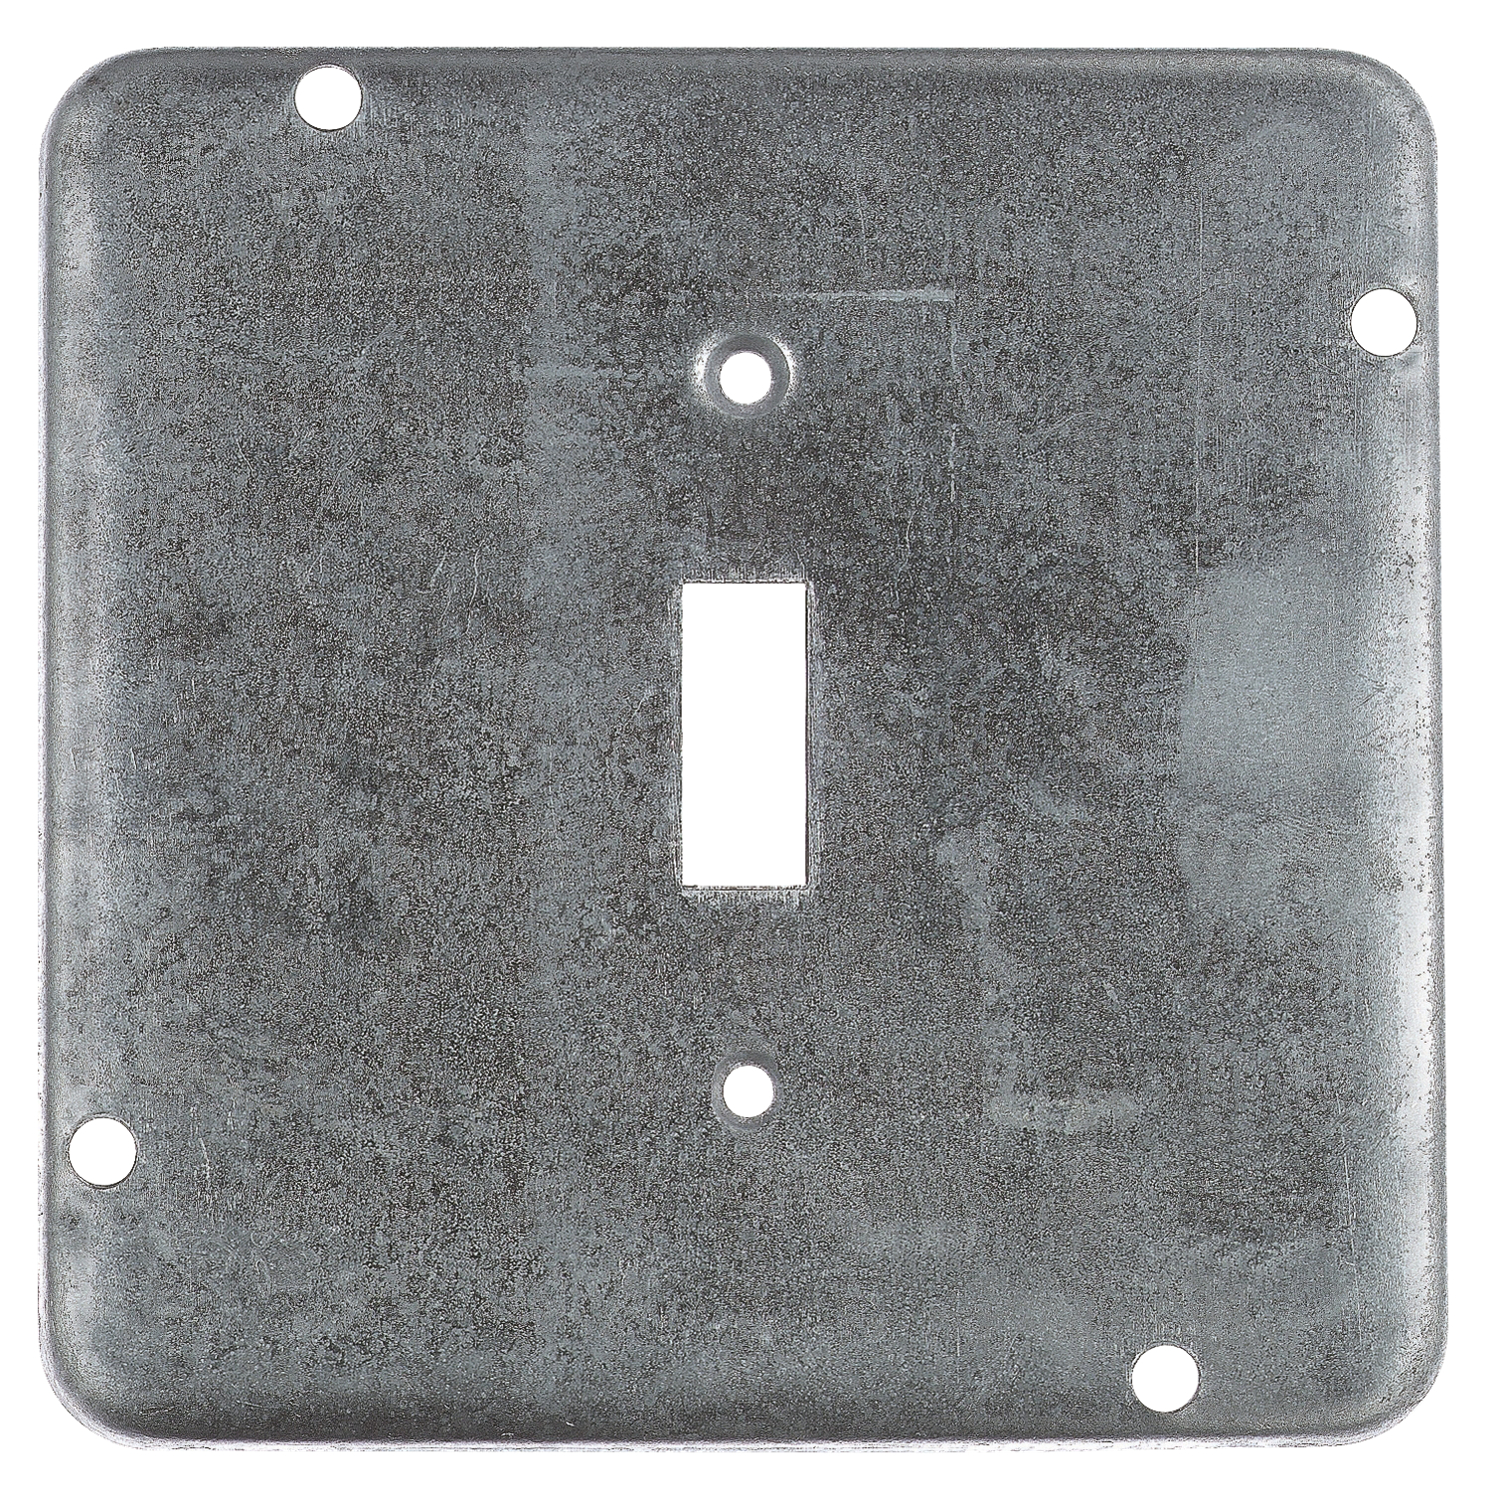 STEEL-CITY RSL-9 4-11/16-IN SQUARE SURFACE COVER, TOGGLE